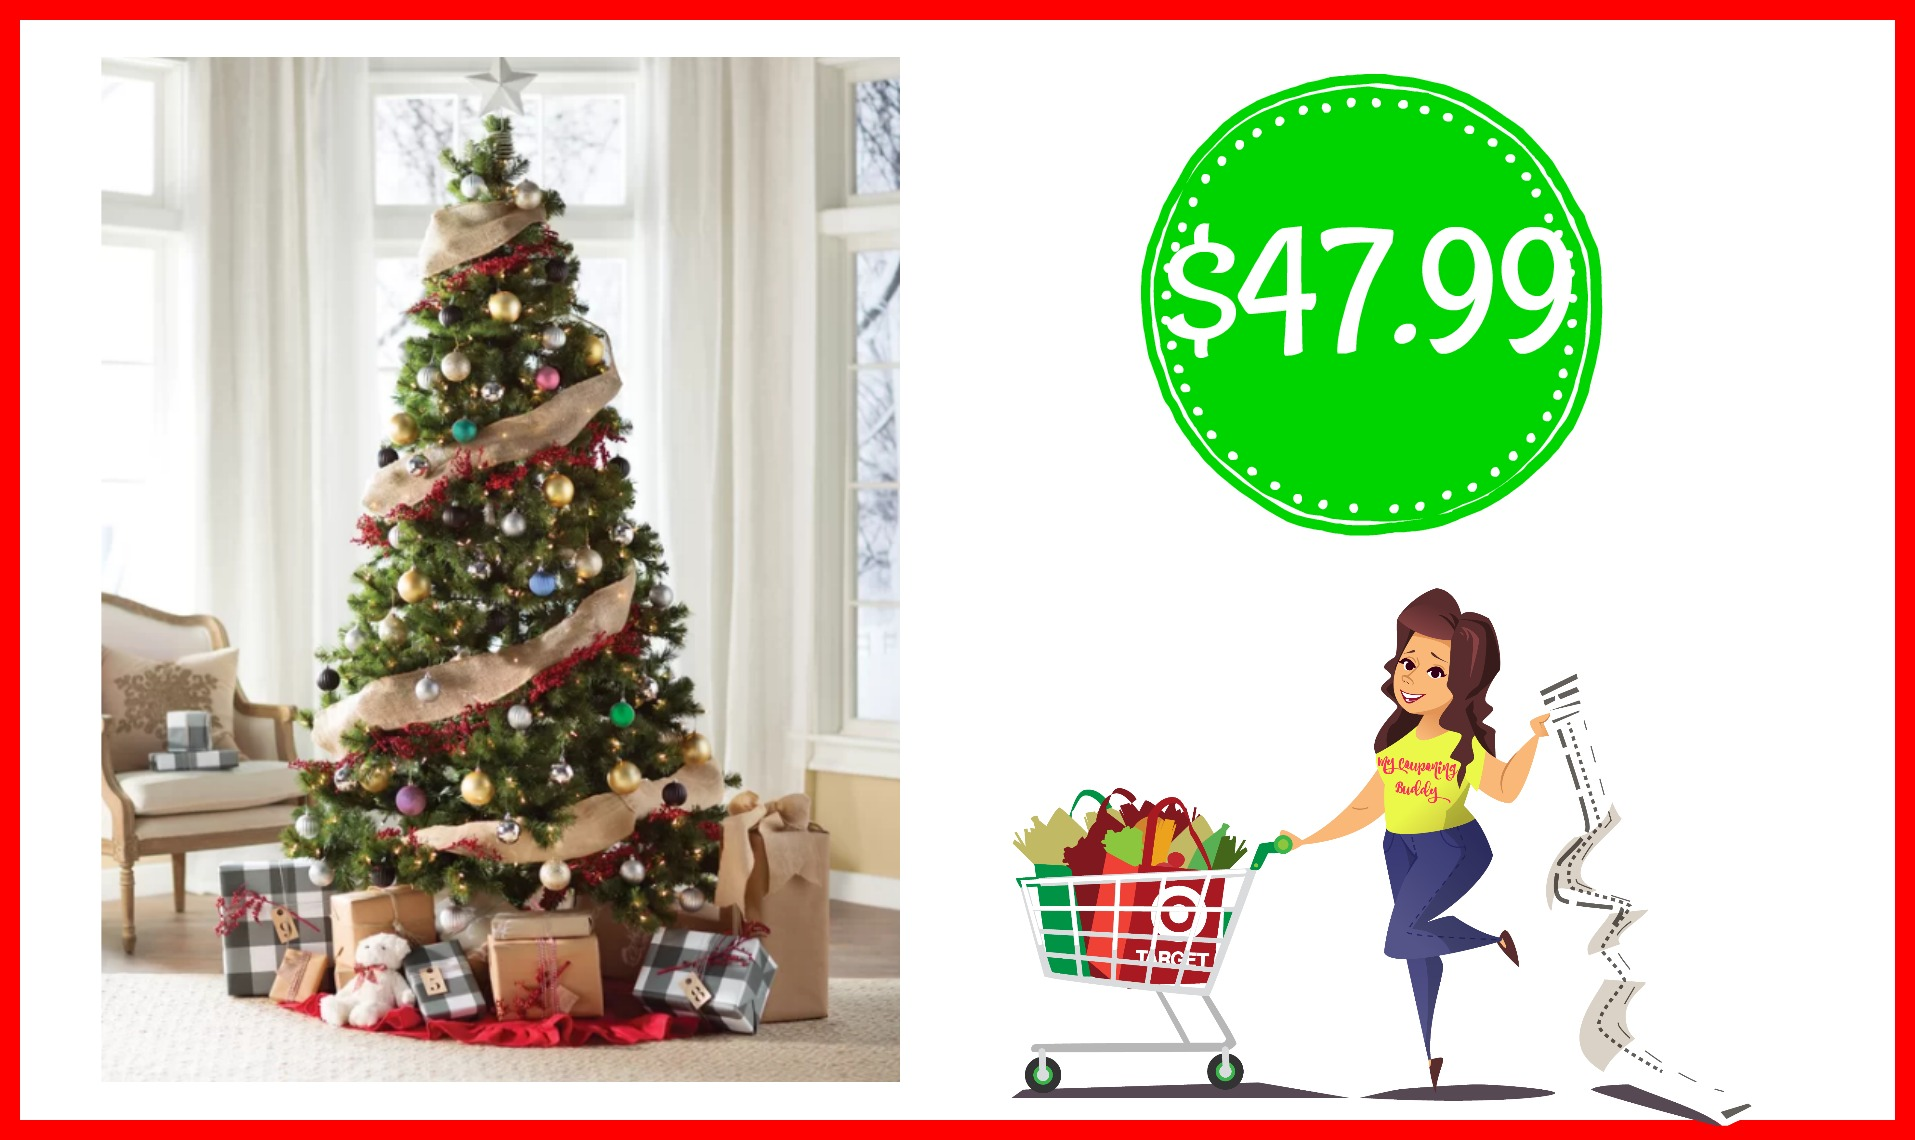 Green Fir Artificial Christmas Tree $47.99 | Couponing | United ...